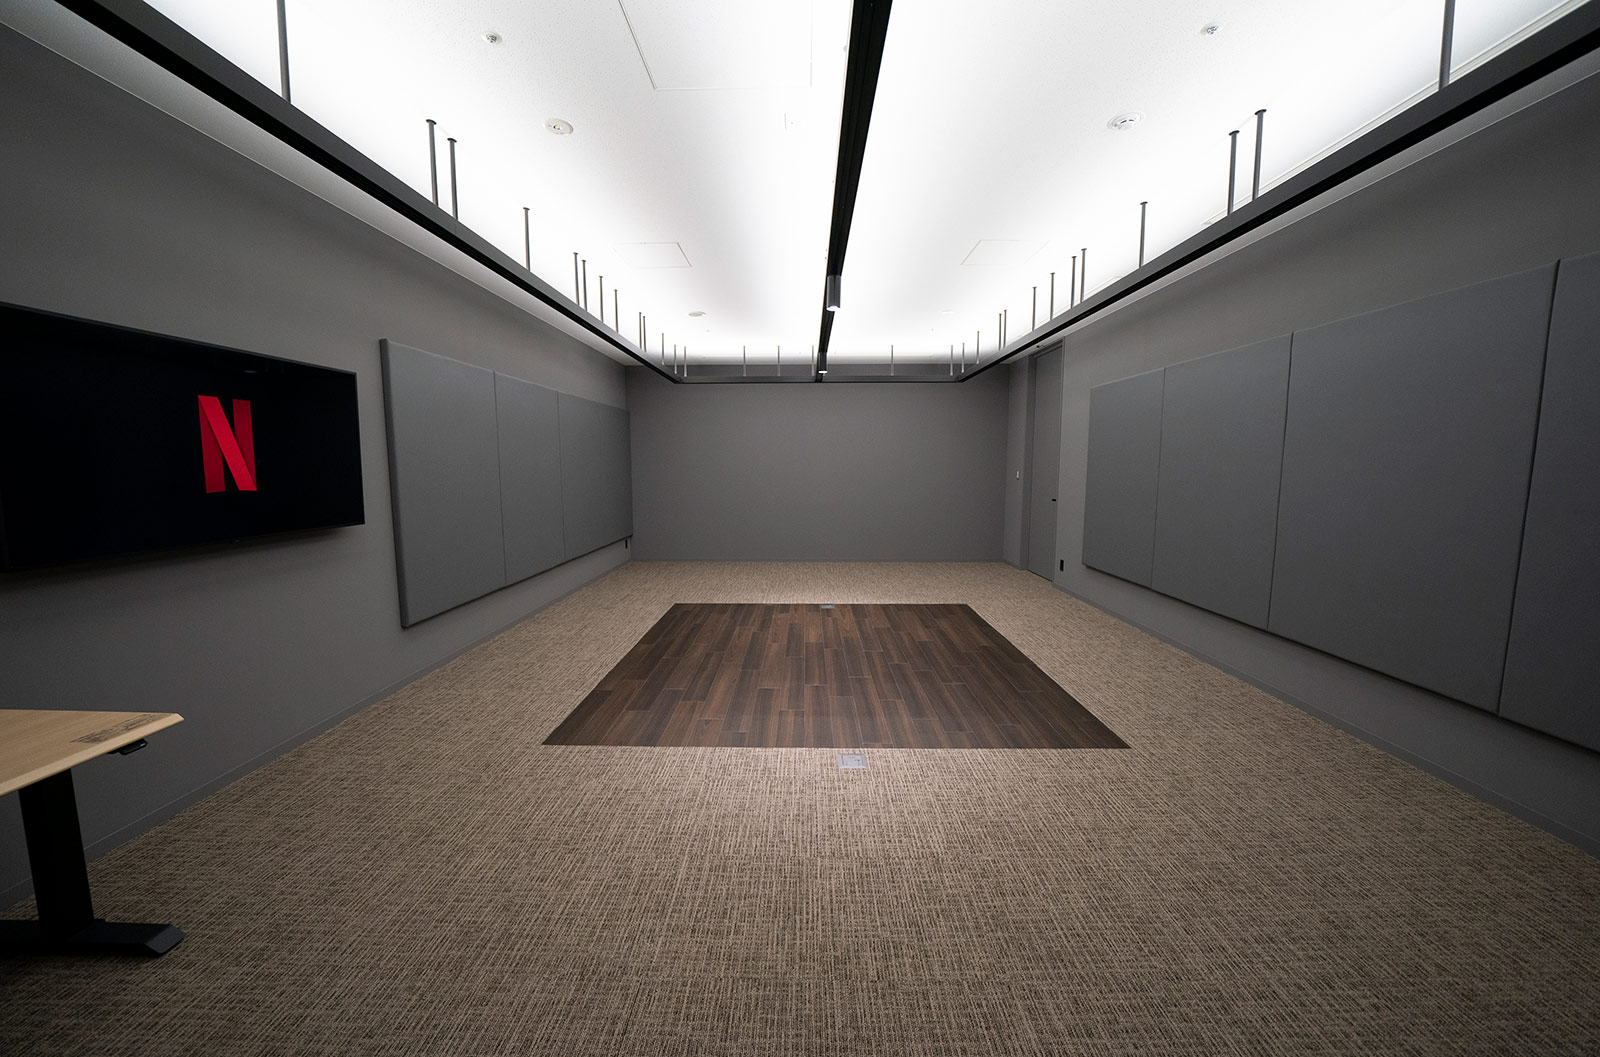 <strong>Lab:</strong> This multi-functional space is designed to be a versatile room for innovation, like testing out new creative technologies such as vr or playing around with the latest motion capture technologies.